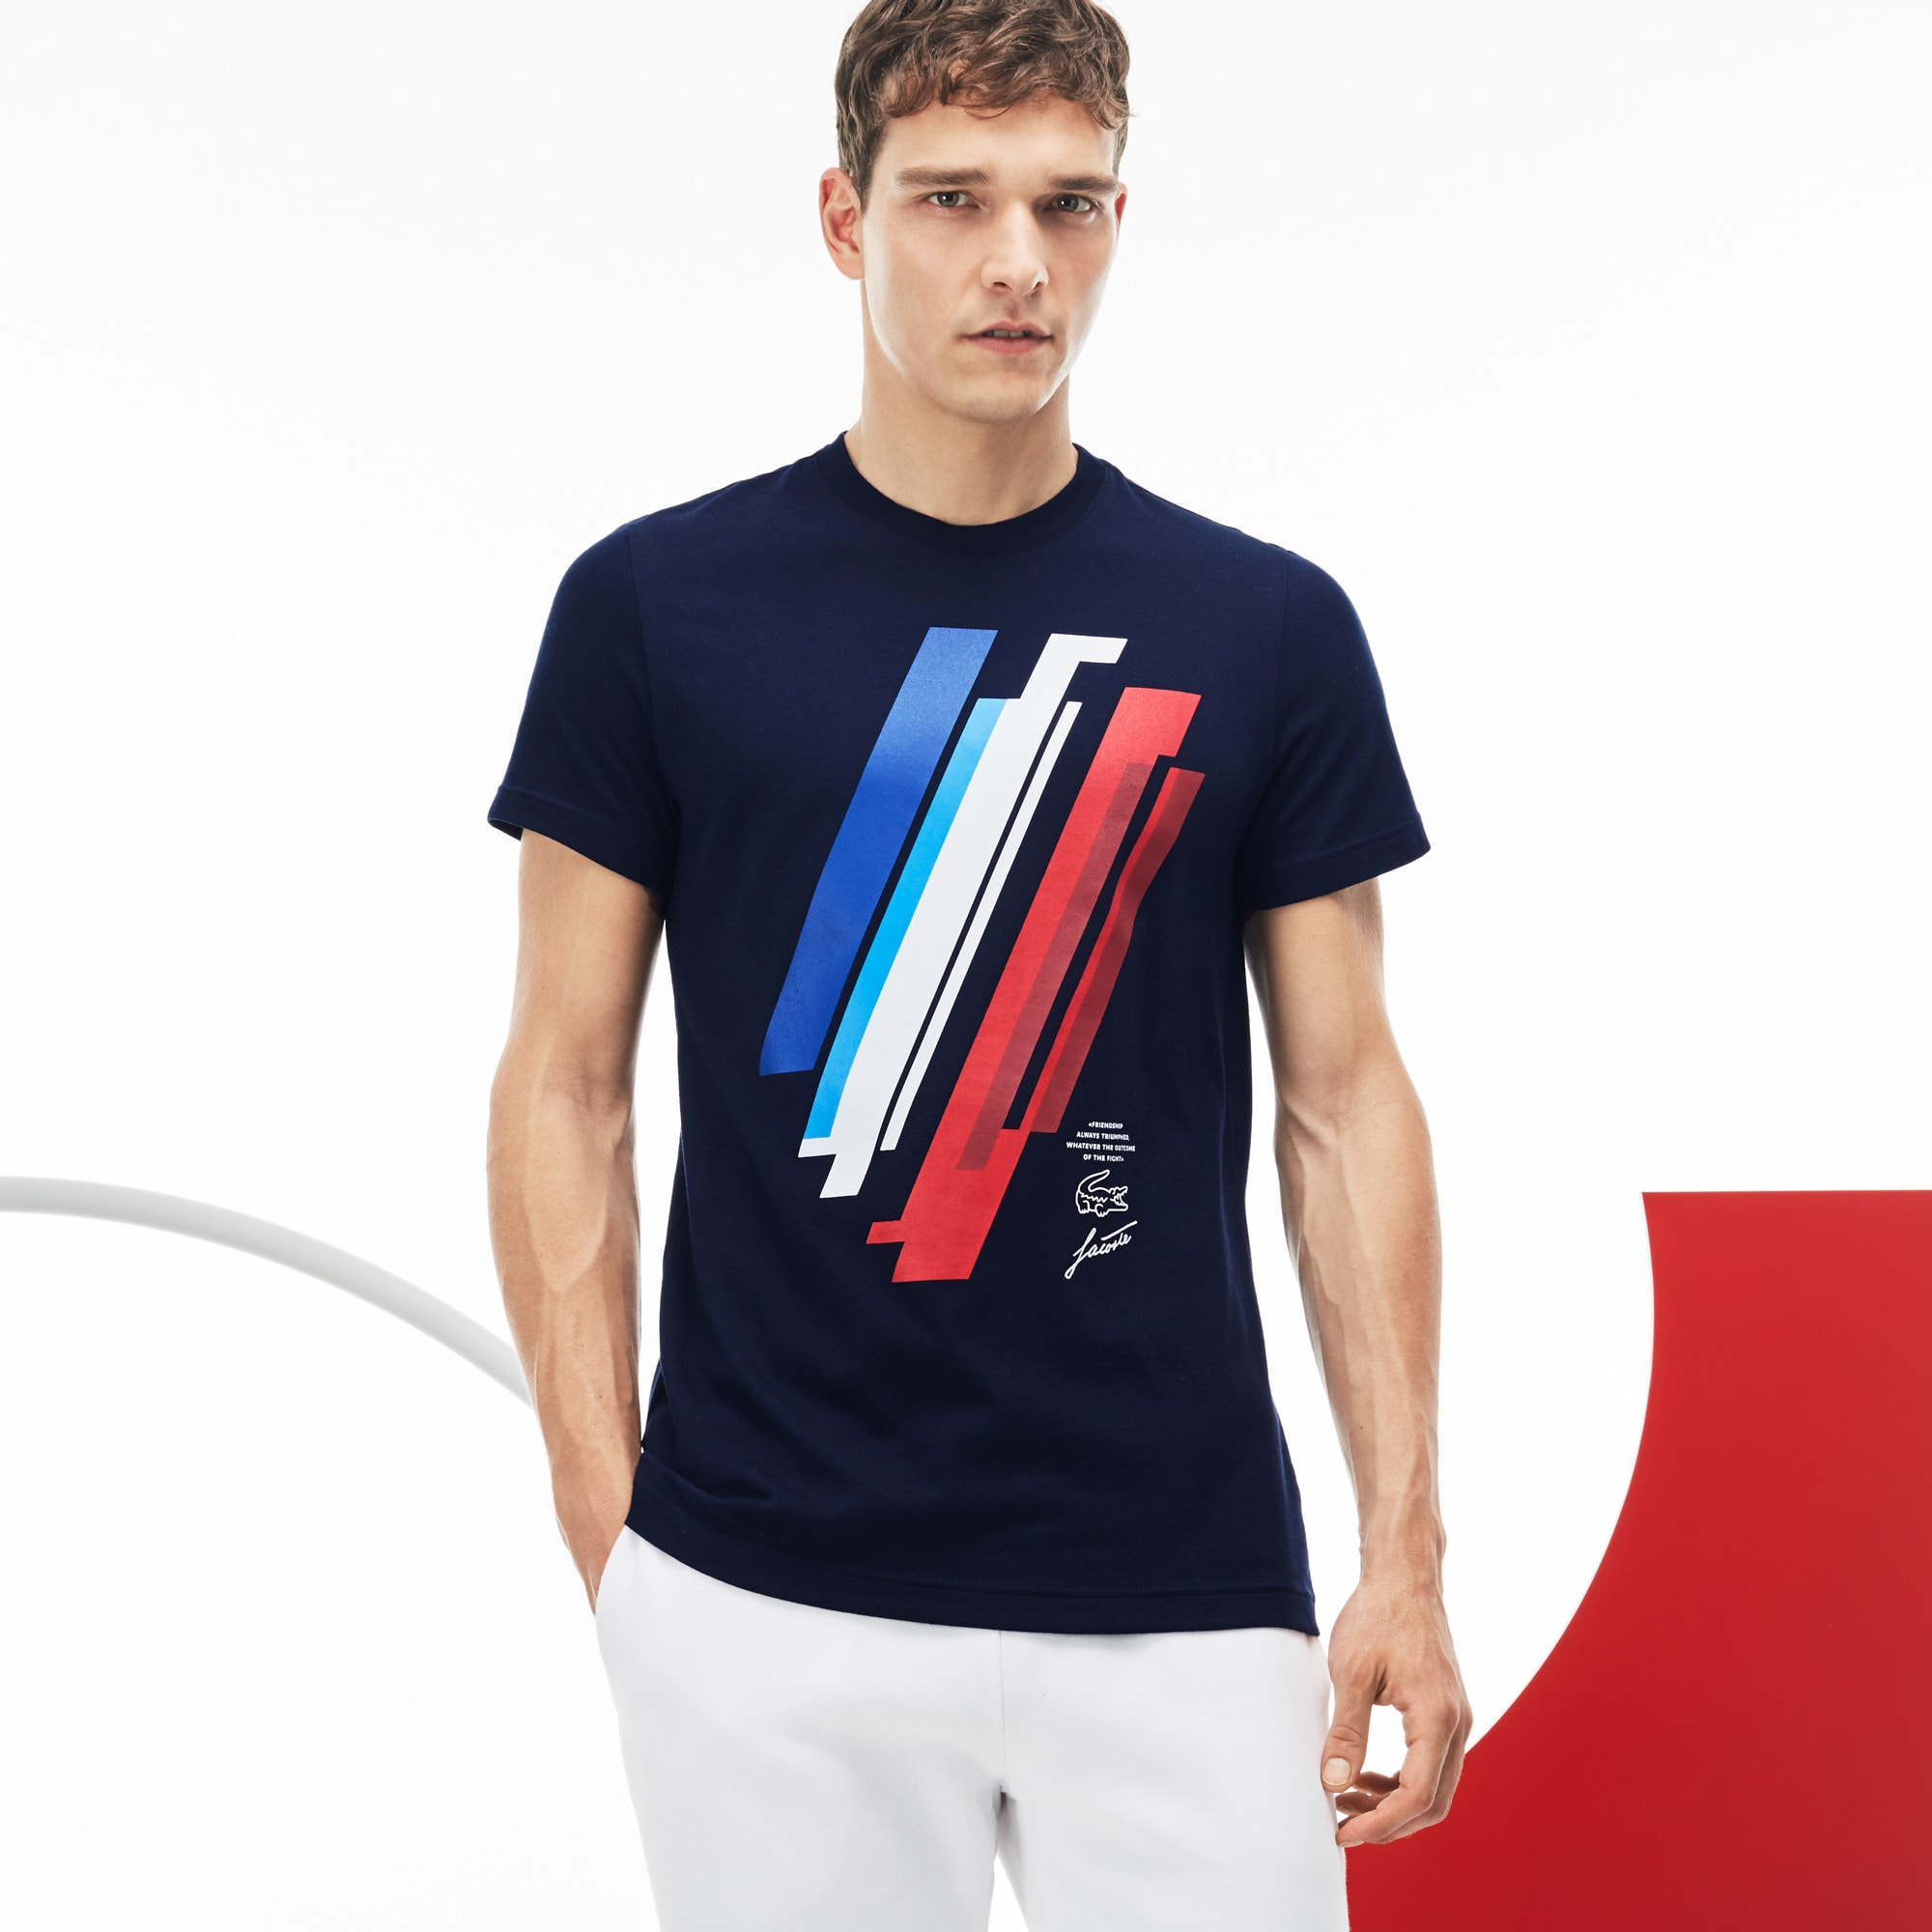 T-shirt Lacoste SPORT in jersey con stampa Edizione COLLECTION TRICOLORE